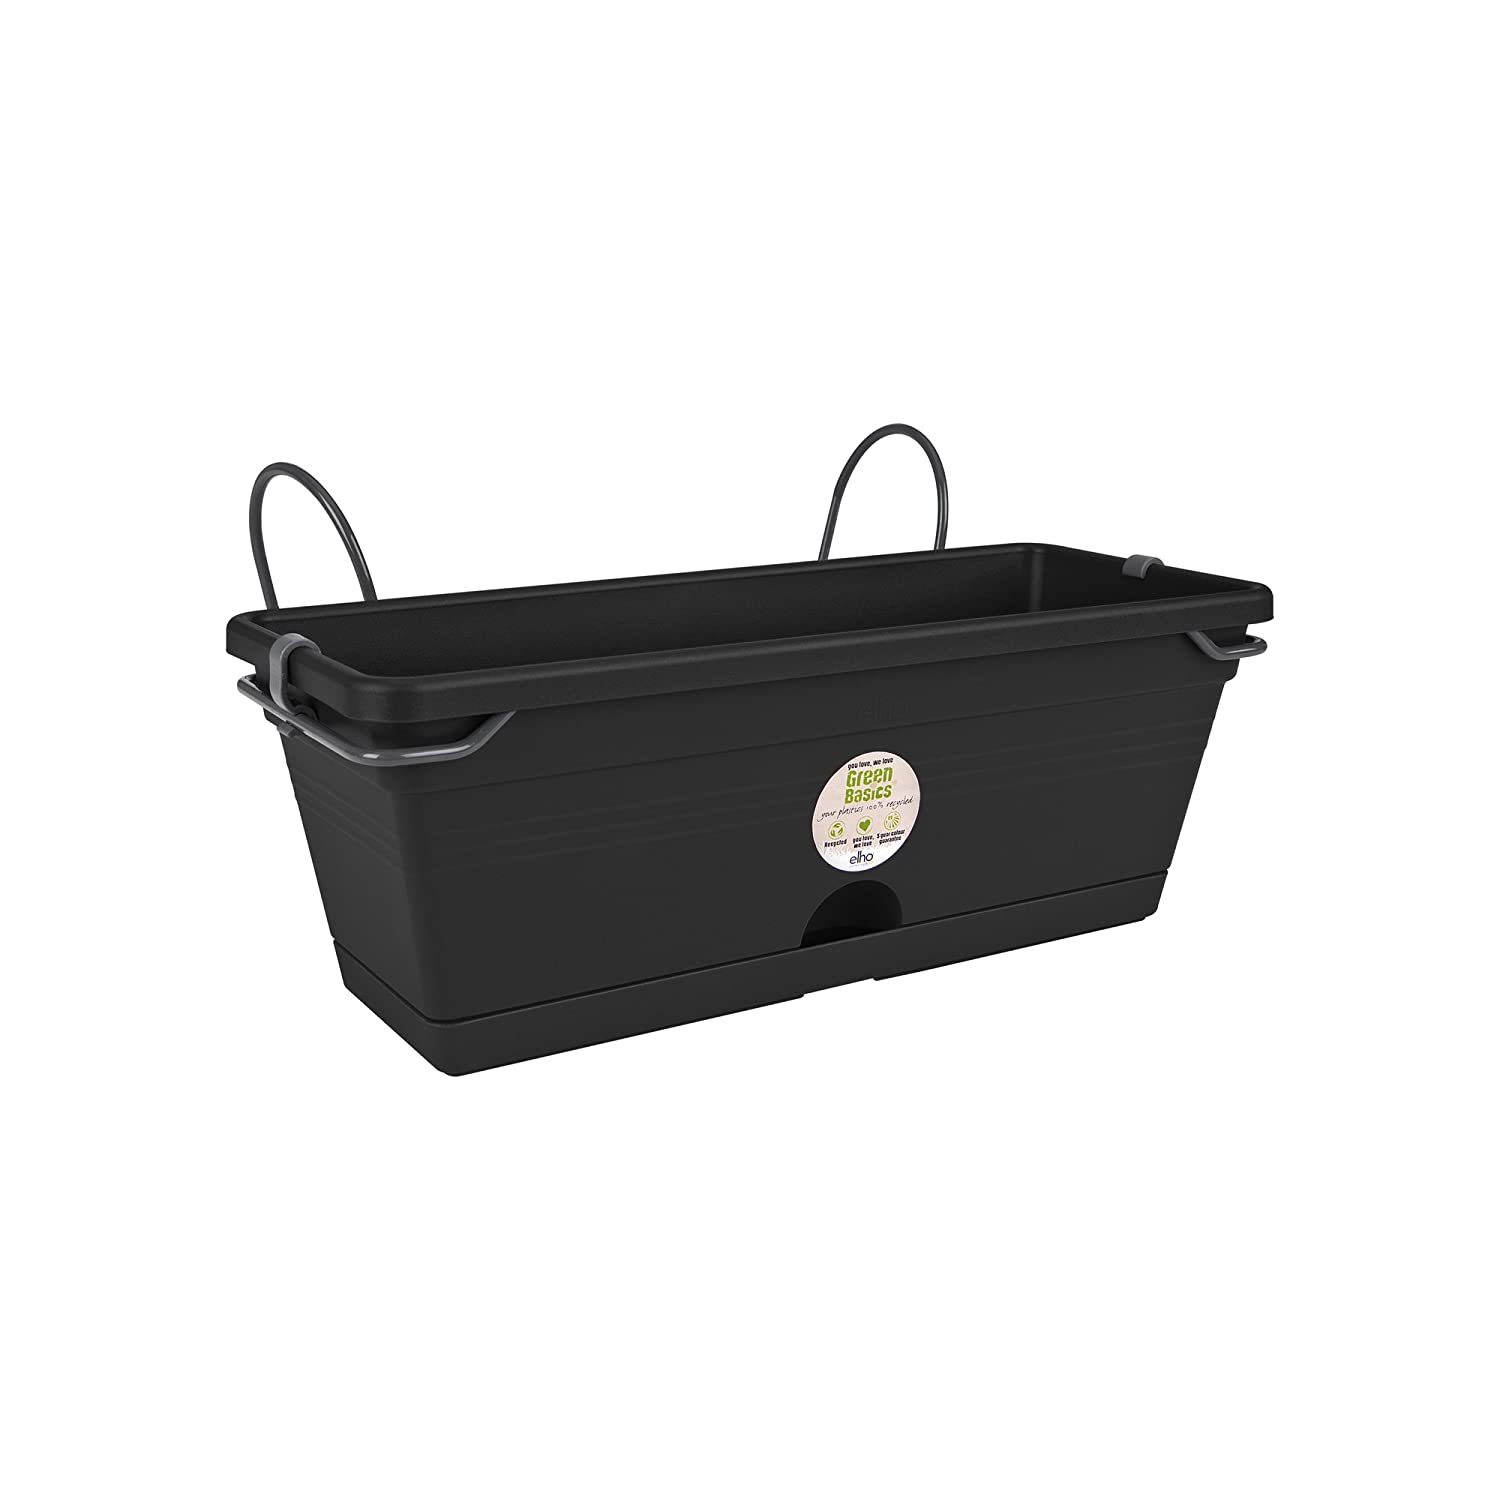 Elho green basics trough mini allin1 30cm planter - living black 6951603043300